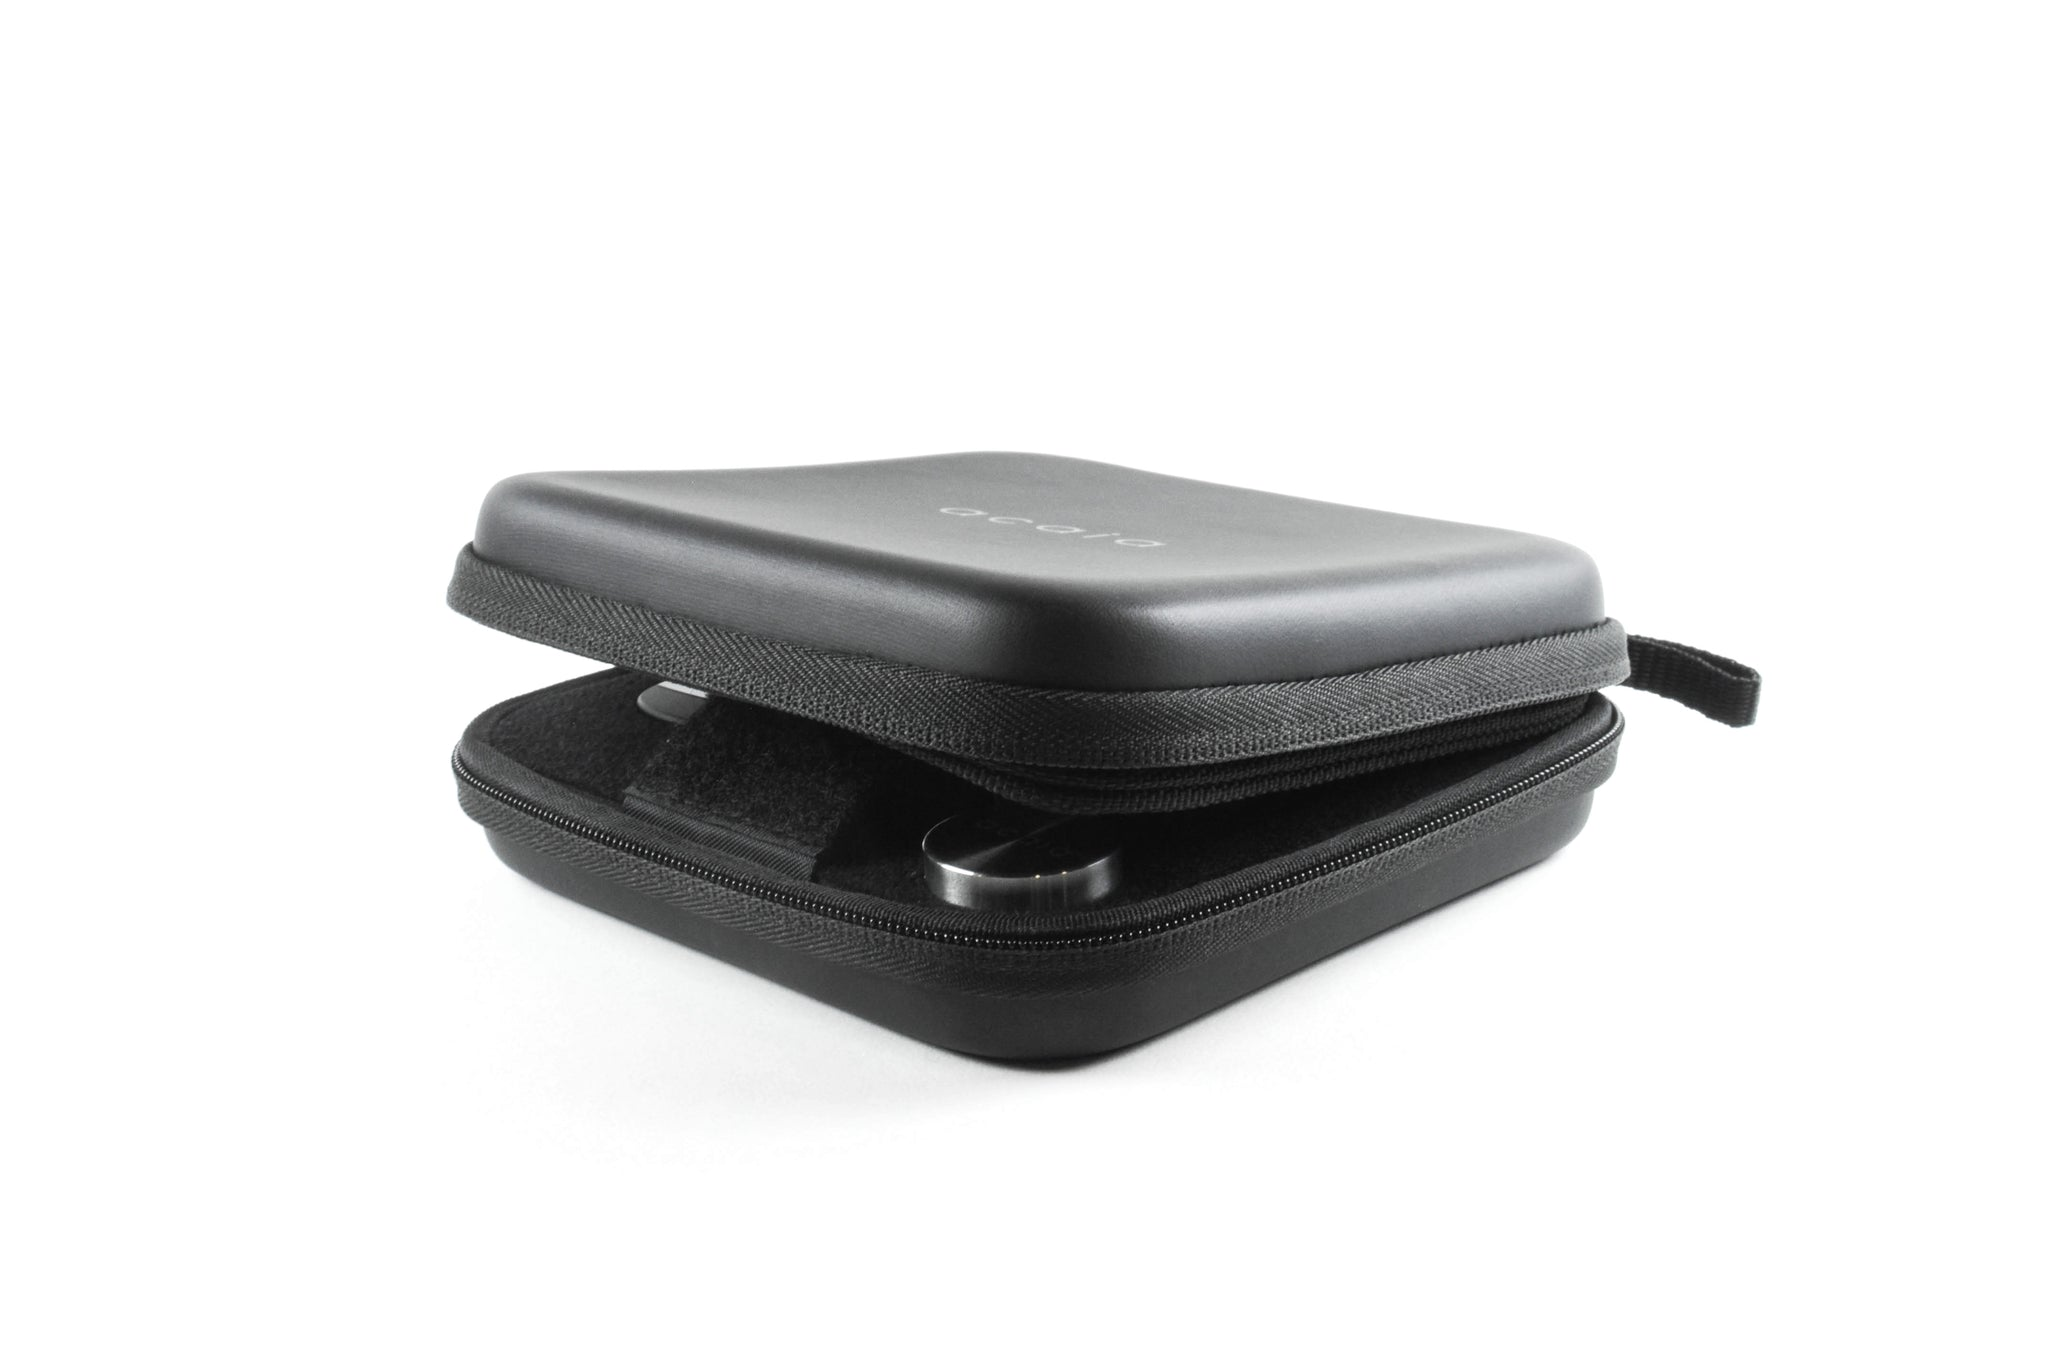 Acaia 'Lunar' Carrying Case